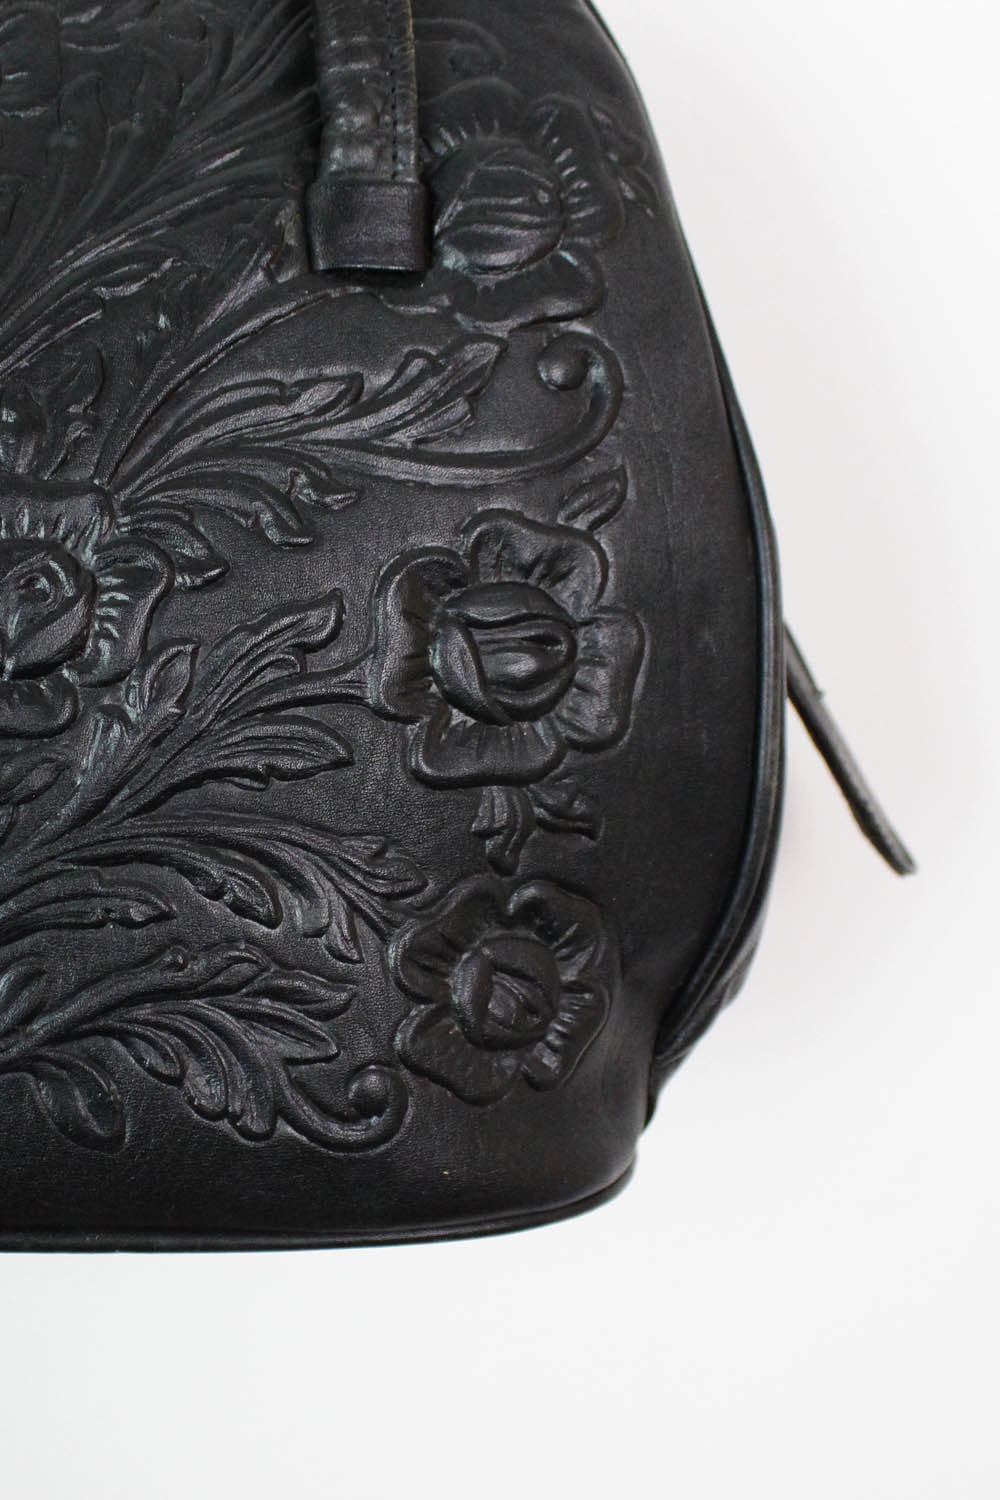 60s tooled leather bag detail